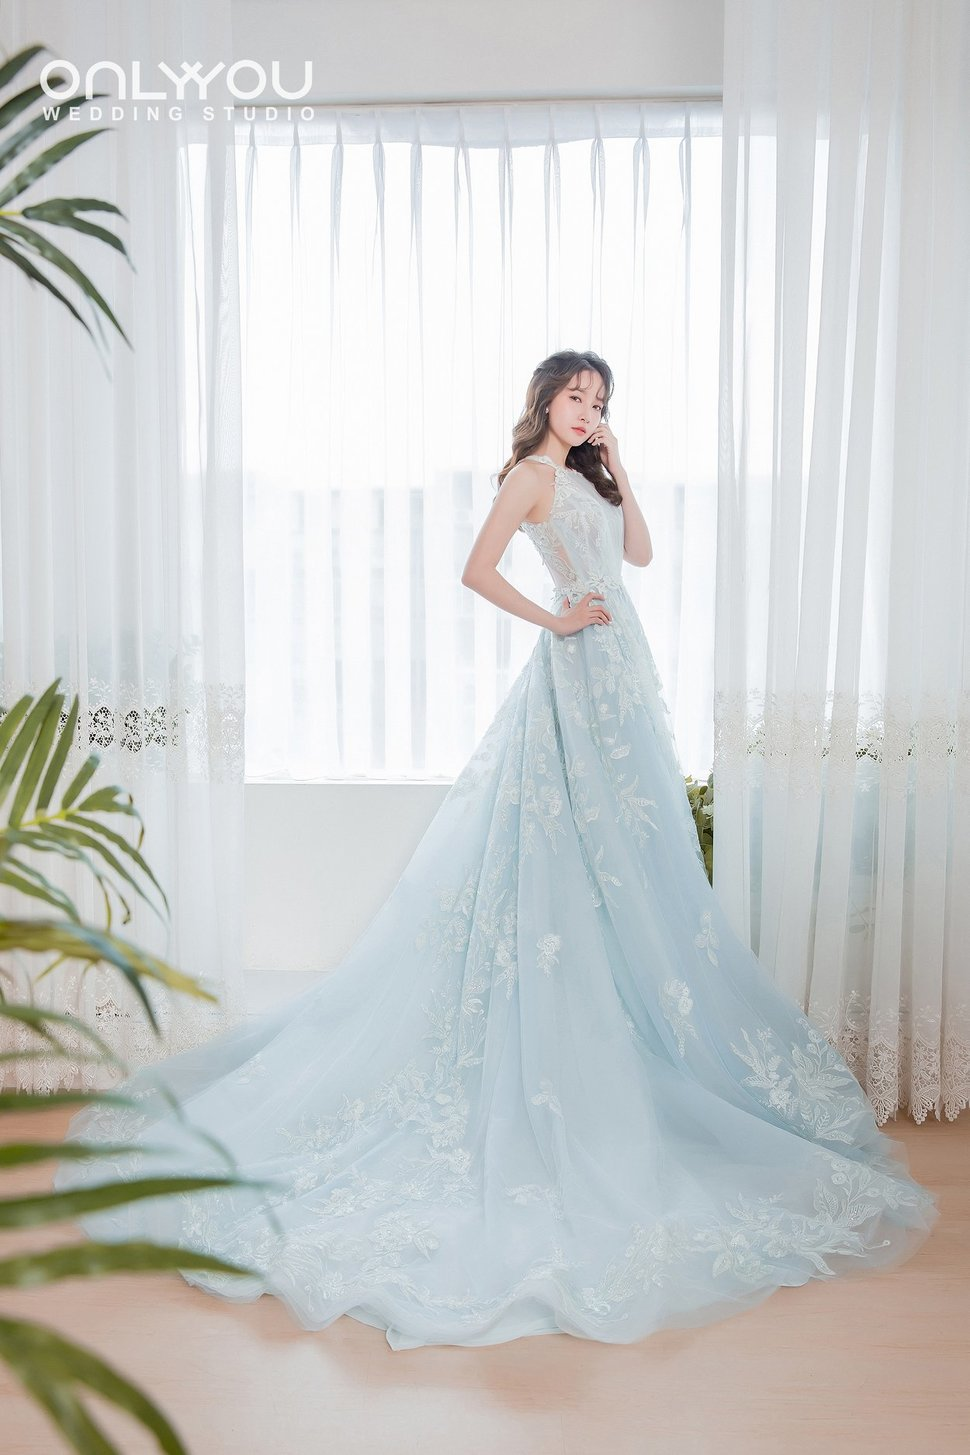 68758609_2310588308996802_166098703302524928_o - ONLY YOU 唯你婚紗攝影《結婚吧》